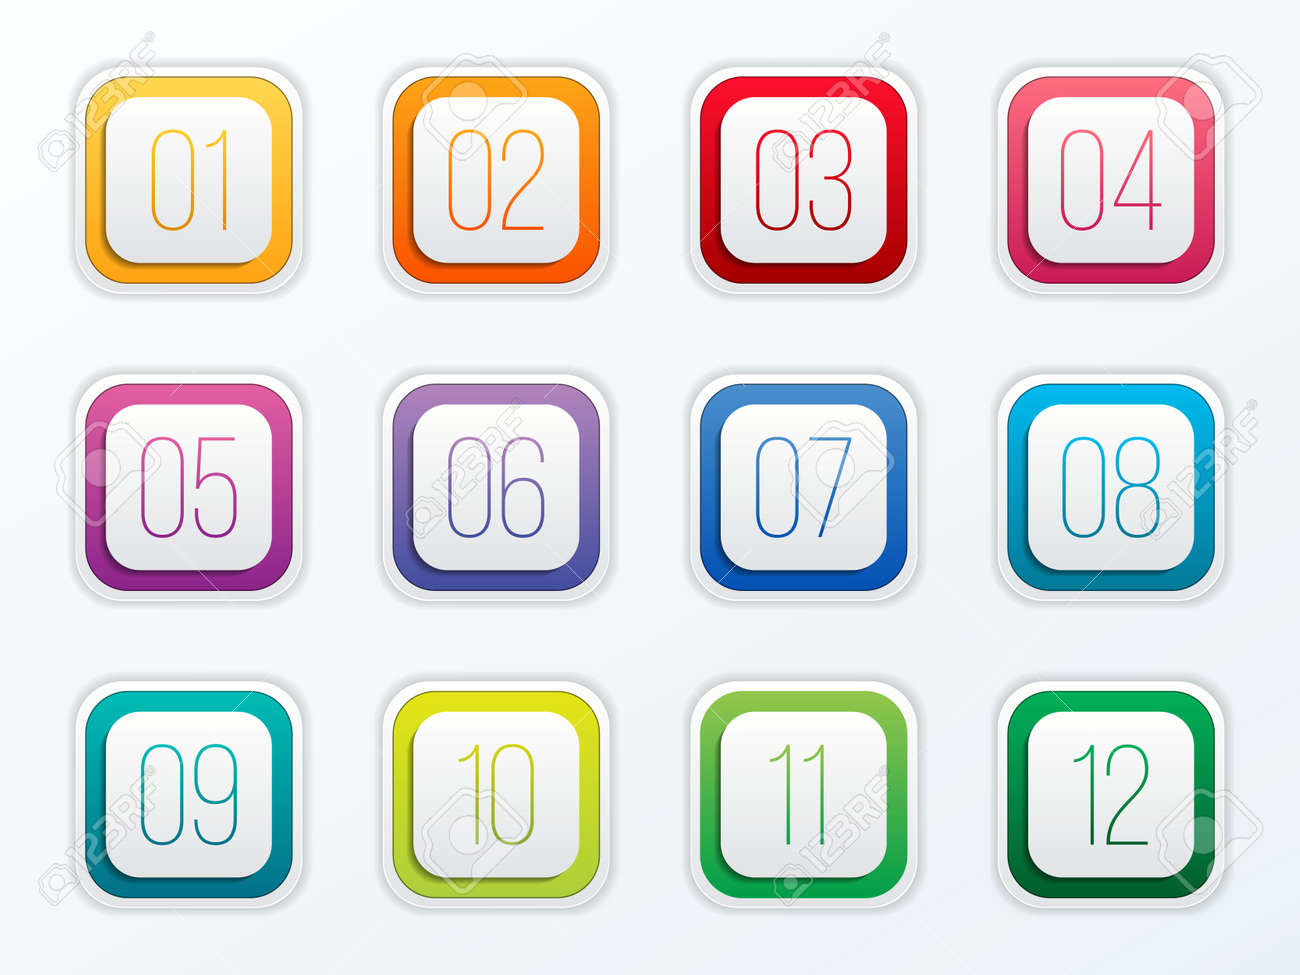 Creative vector illustration of number bullet points set 1 to 12 isolated on transparent background. Art design. Flat color gradient web icons template. Abstract concept graphic element. - 93023461